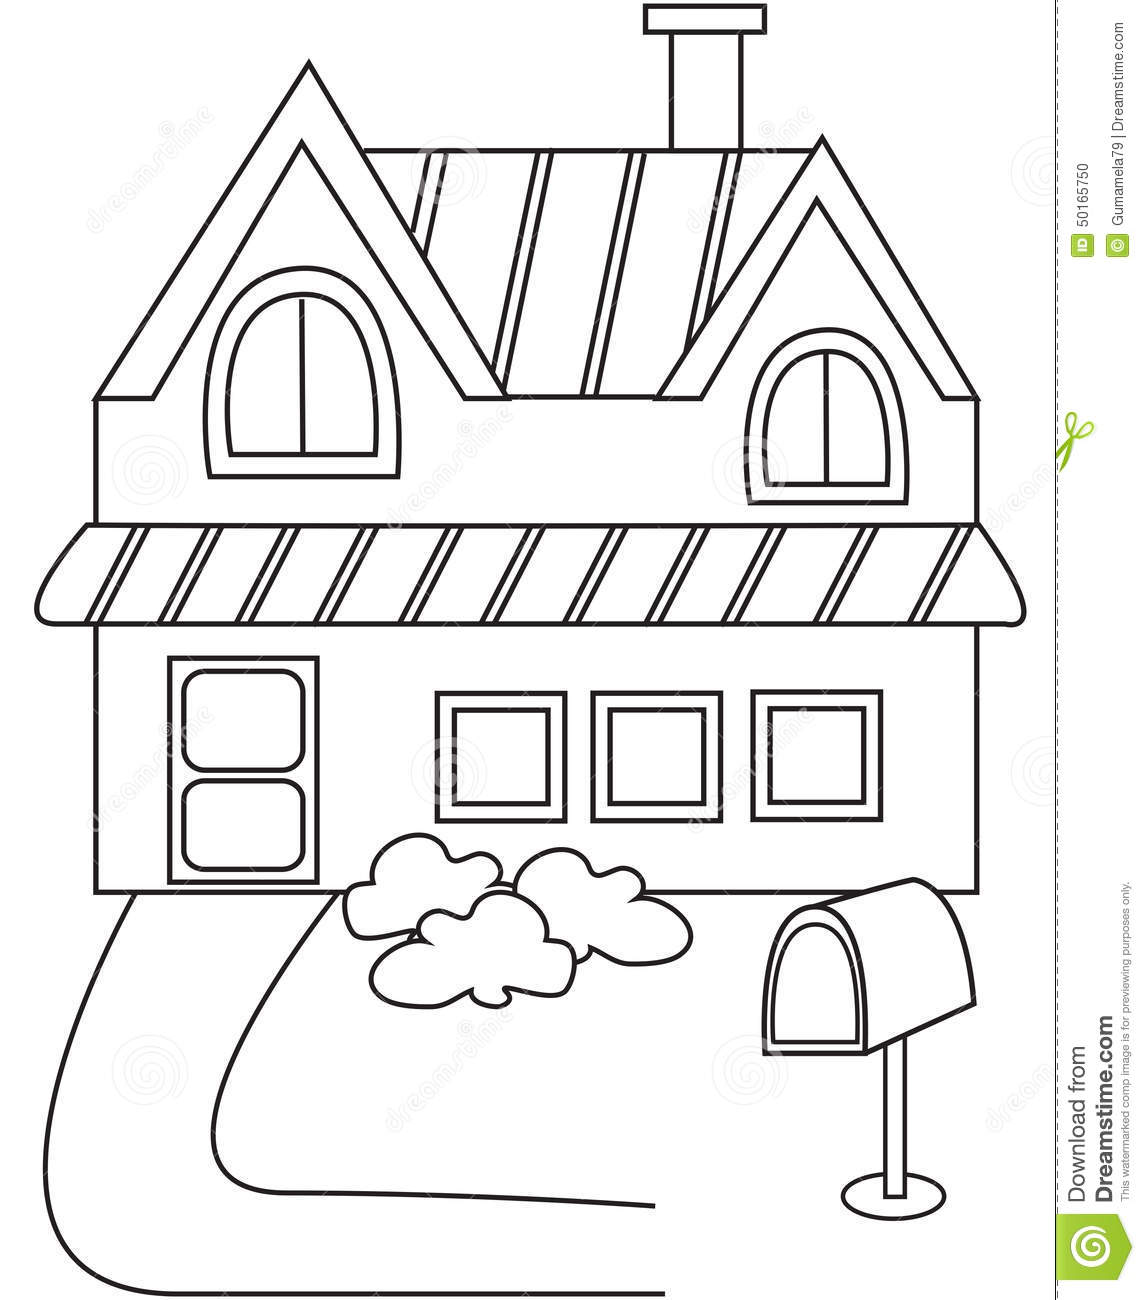 house-coloring-page-useful-as-book-kids-50165750